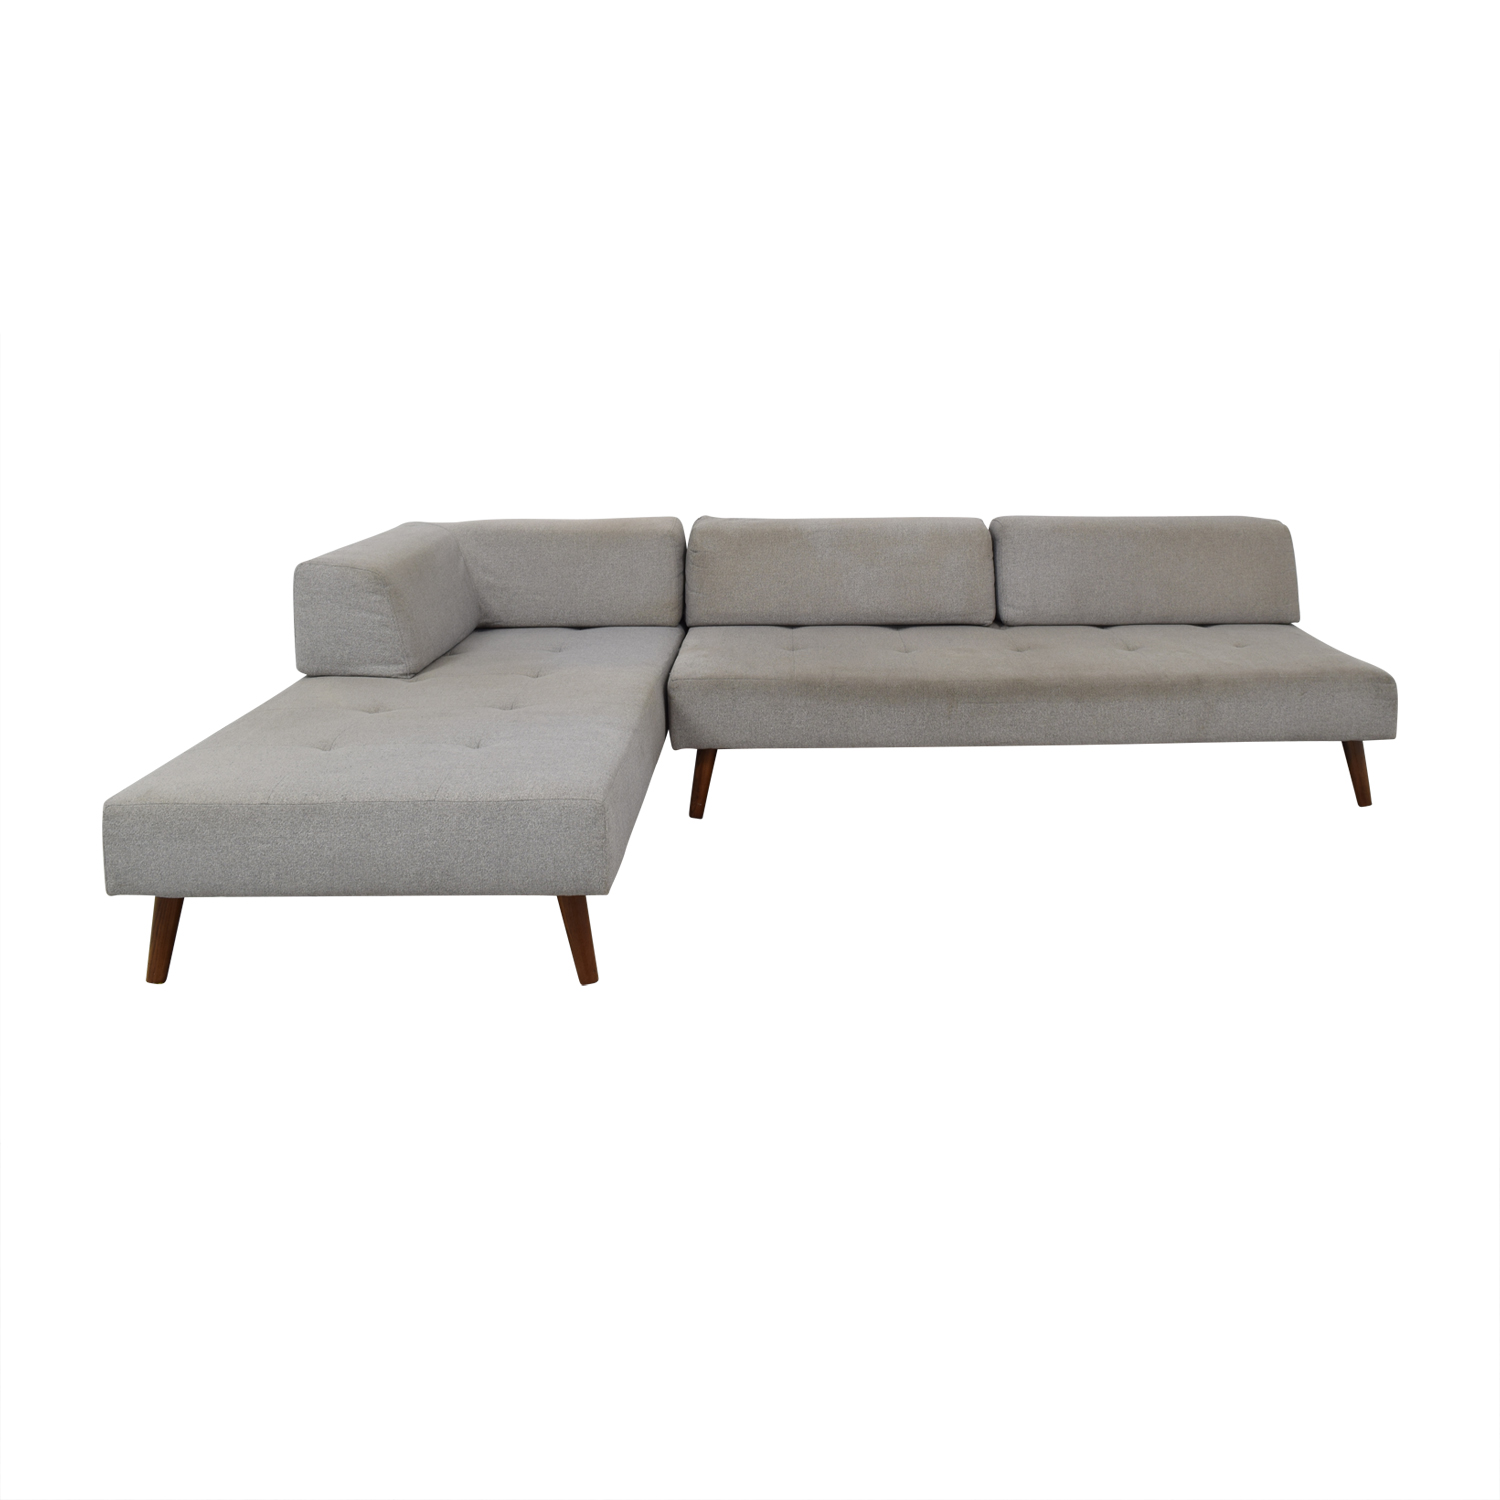 West Elm Sectional Couch / Sofas